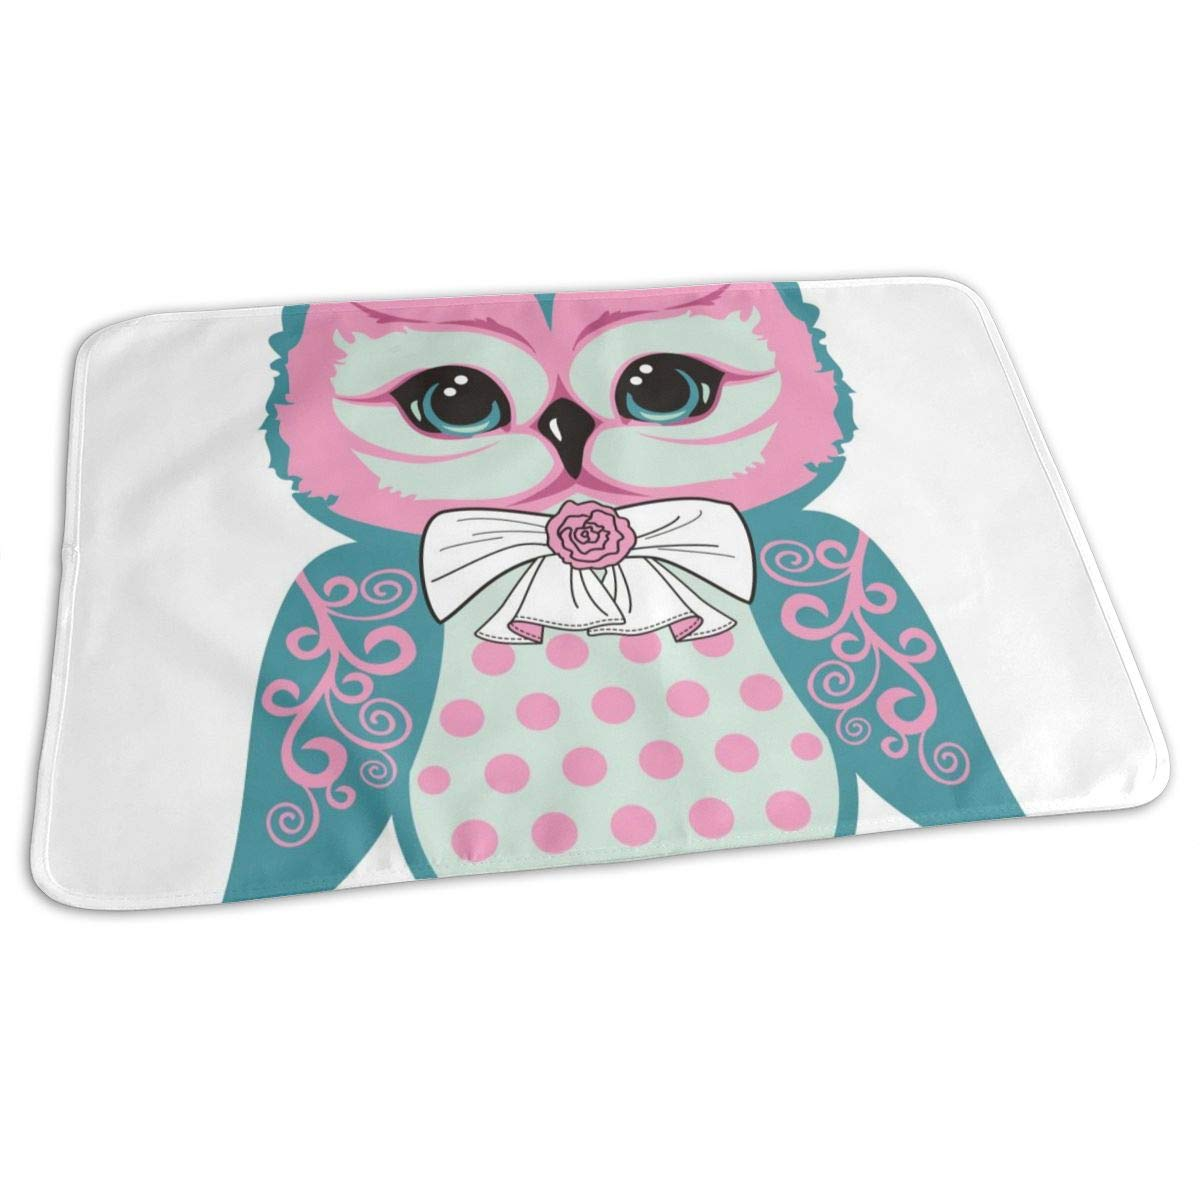 Osvbs Lovely Baby Reusable Waterproof Portable Owl Cubs Have Bows and Roses Changing Pad Home Travel 27.5''x19.7'' by Osvbs